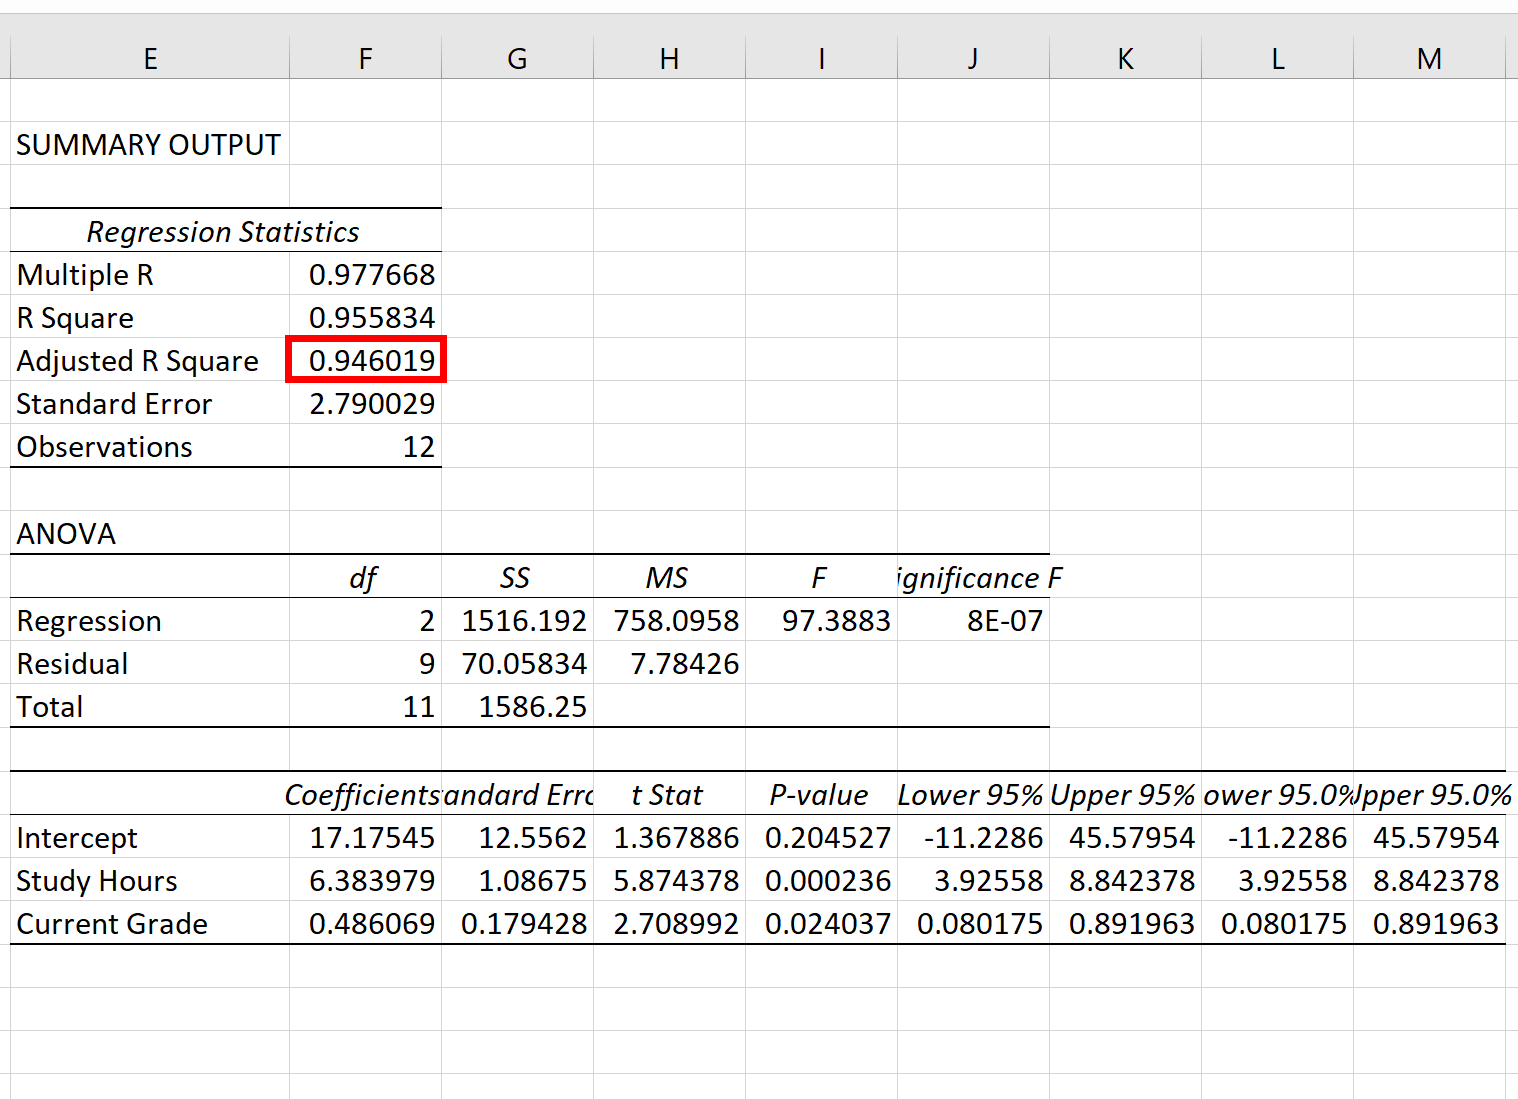 Adjusted R-squared in Excel